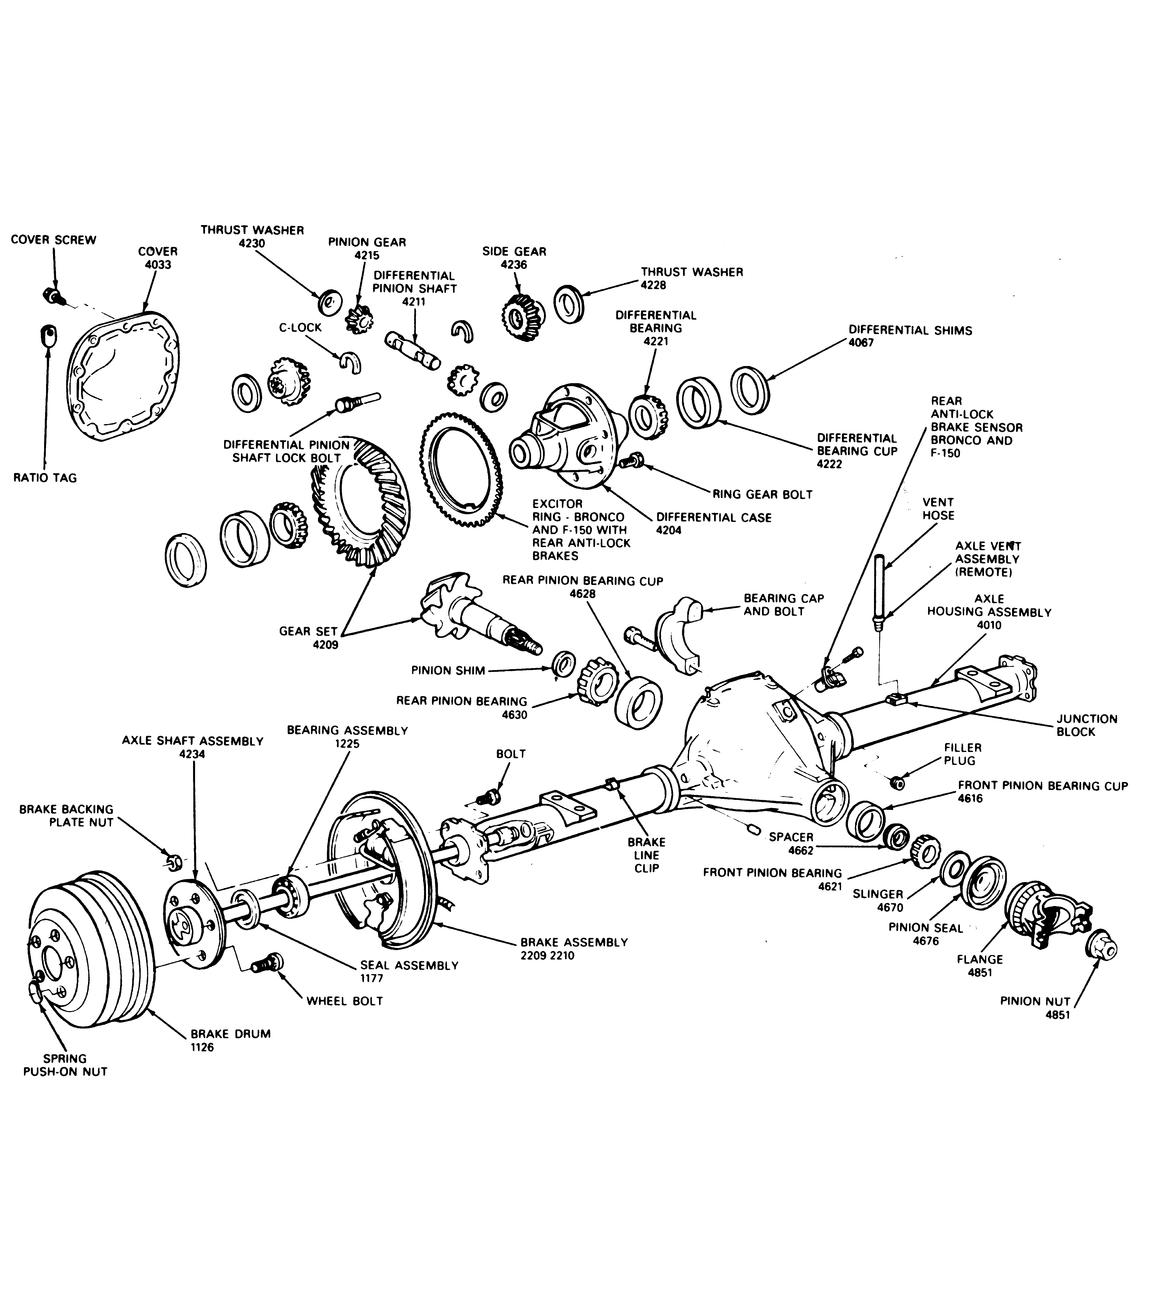 Transaxle Pinion Bearings